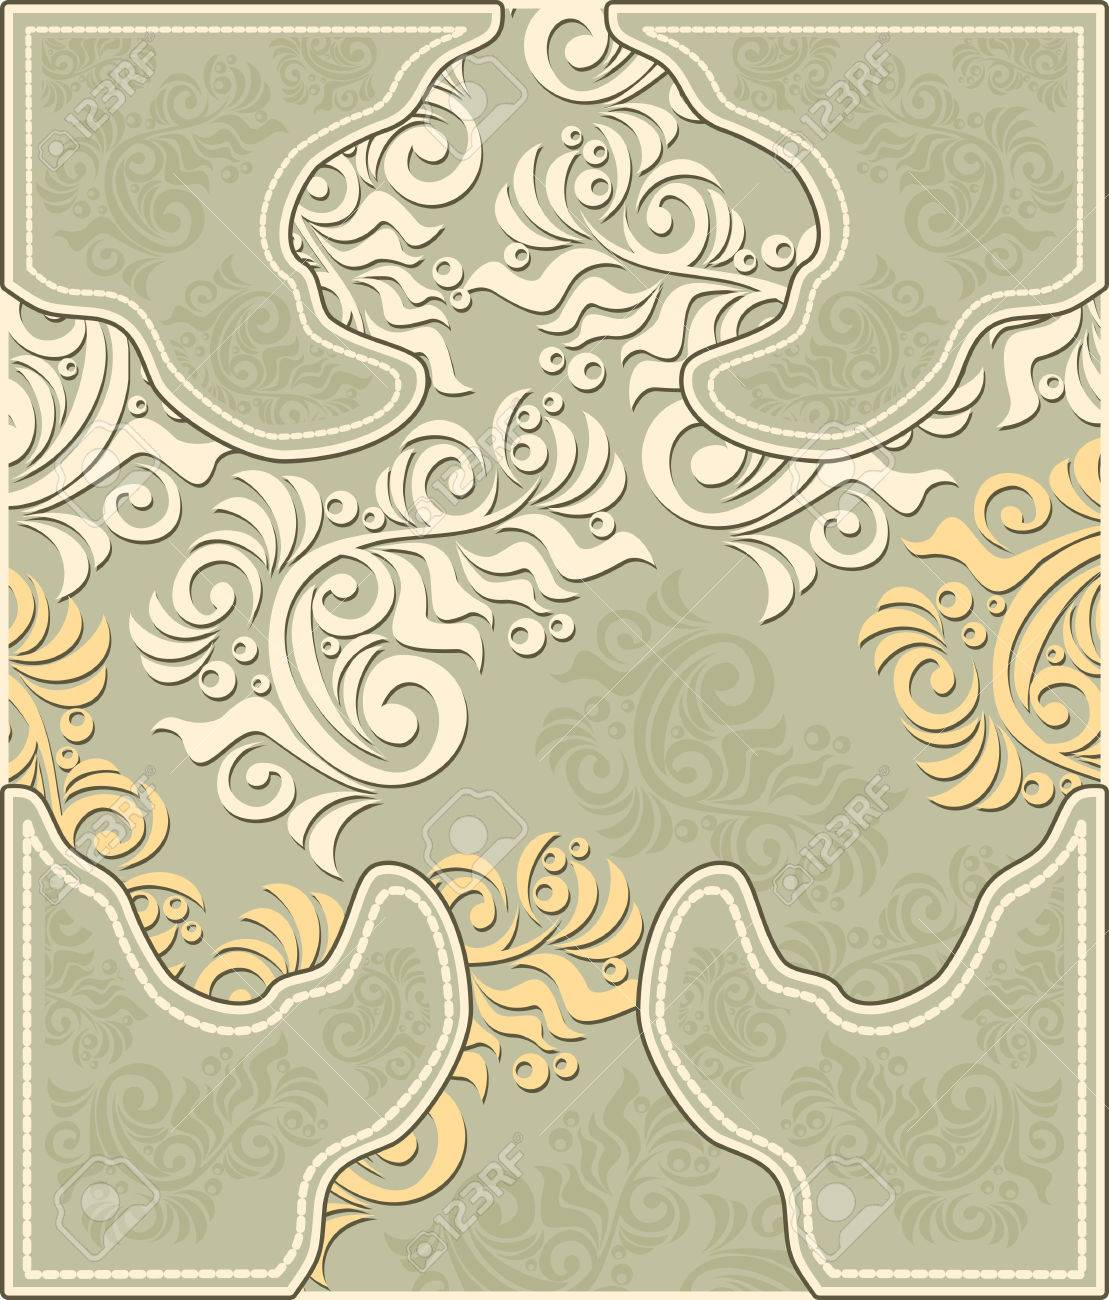 Decorative floral background in pastel colors Stock Vector - 23212711